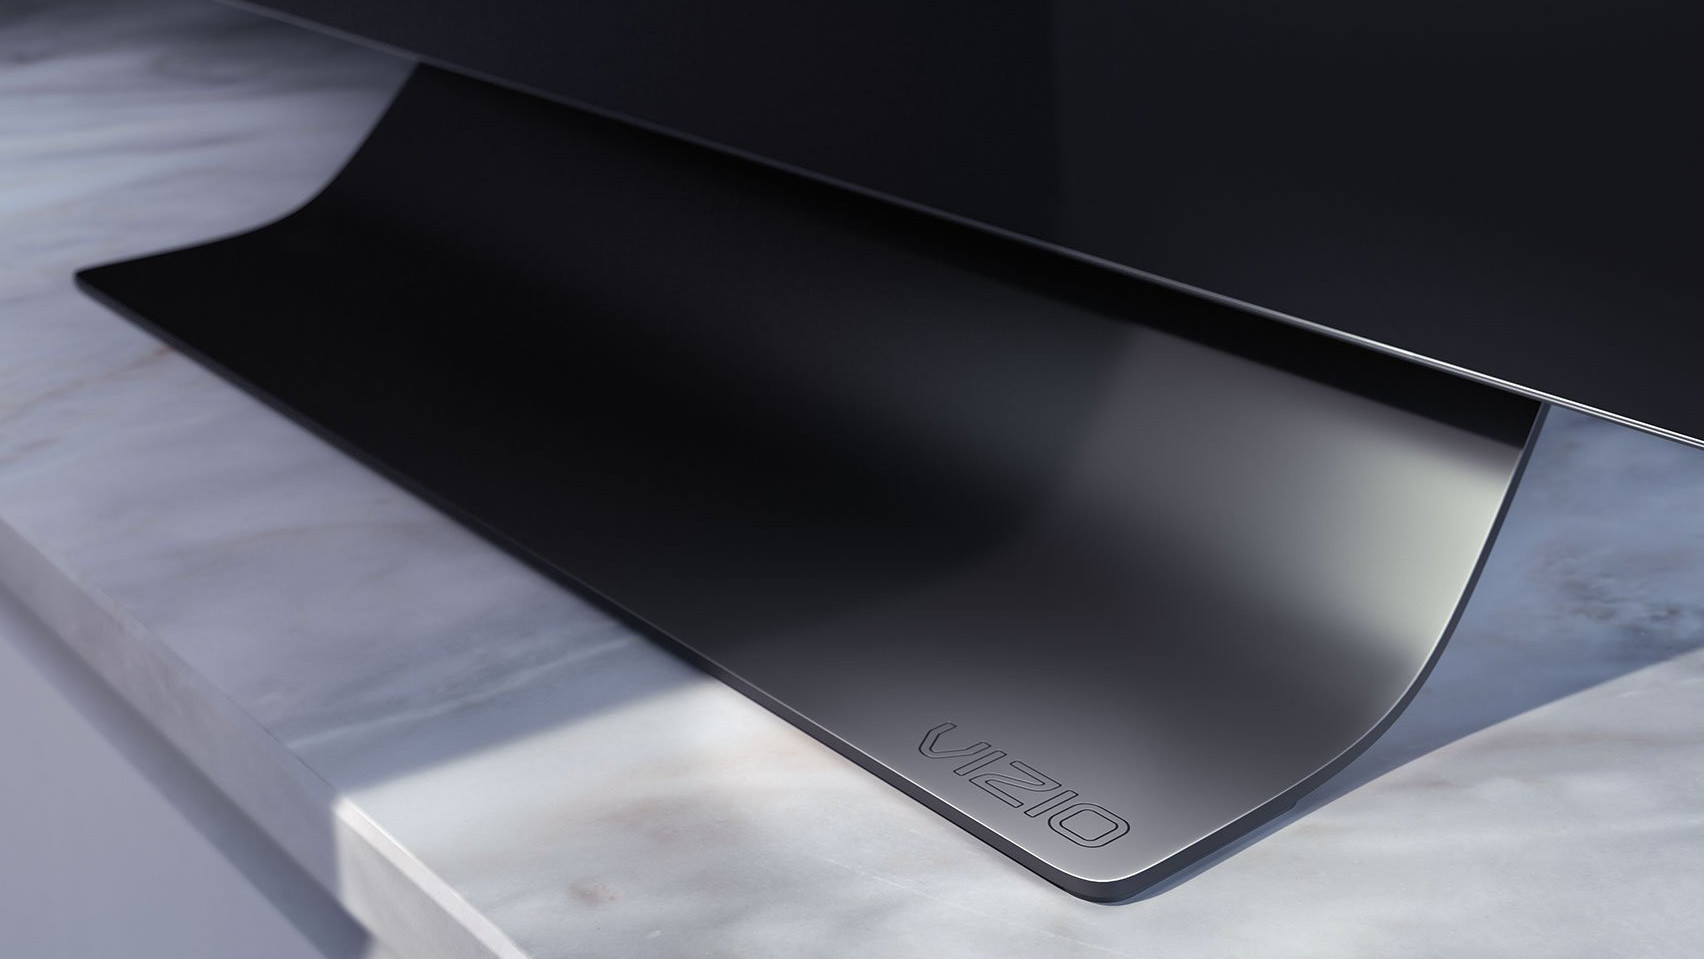 The curved stand of the Vizio OLED TV